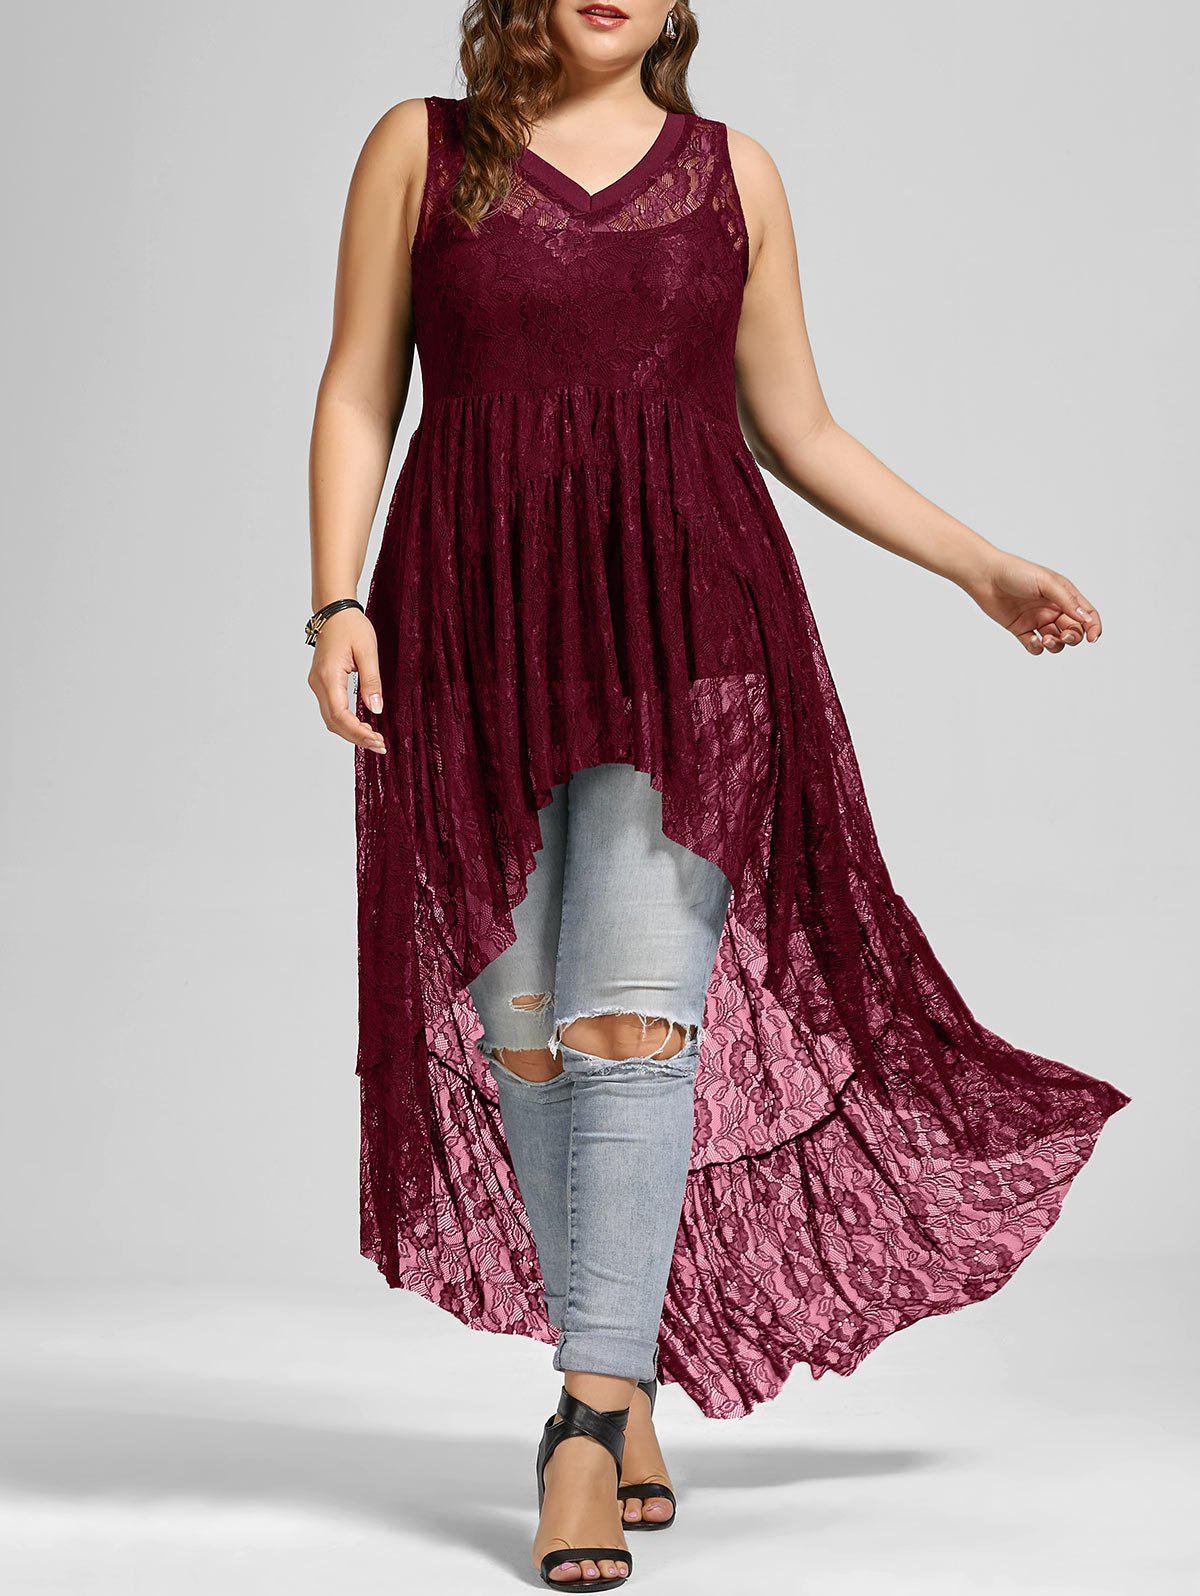 See Through Lace High Low Plus Size TopWOMEN<br><br>Size: 3XL; Color: WINE RED; Material: Polyester; Shirt Length: Long; Sleeve Length: Sleeveless; Collar: V-Neck; Style: Fashion; Season: Summer; Pattern Type: Solid; Weight: 0.3300kg; Package Contents: 1 x Top;